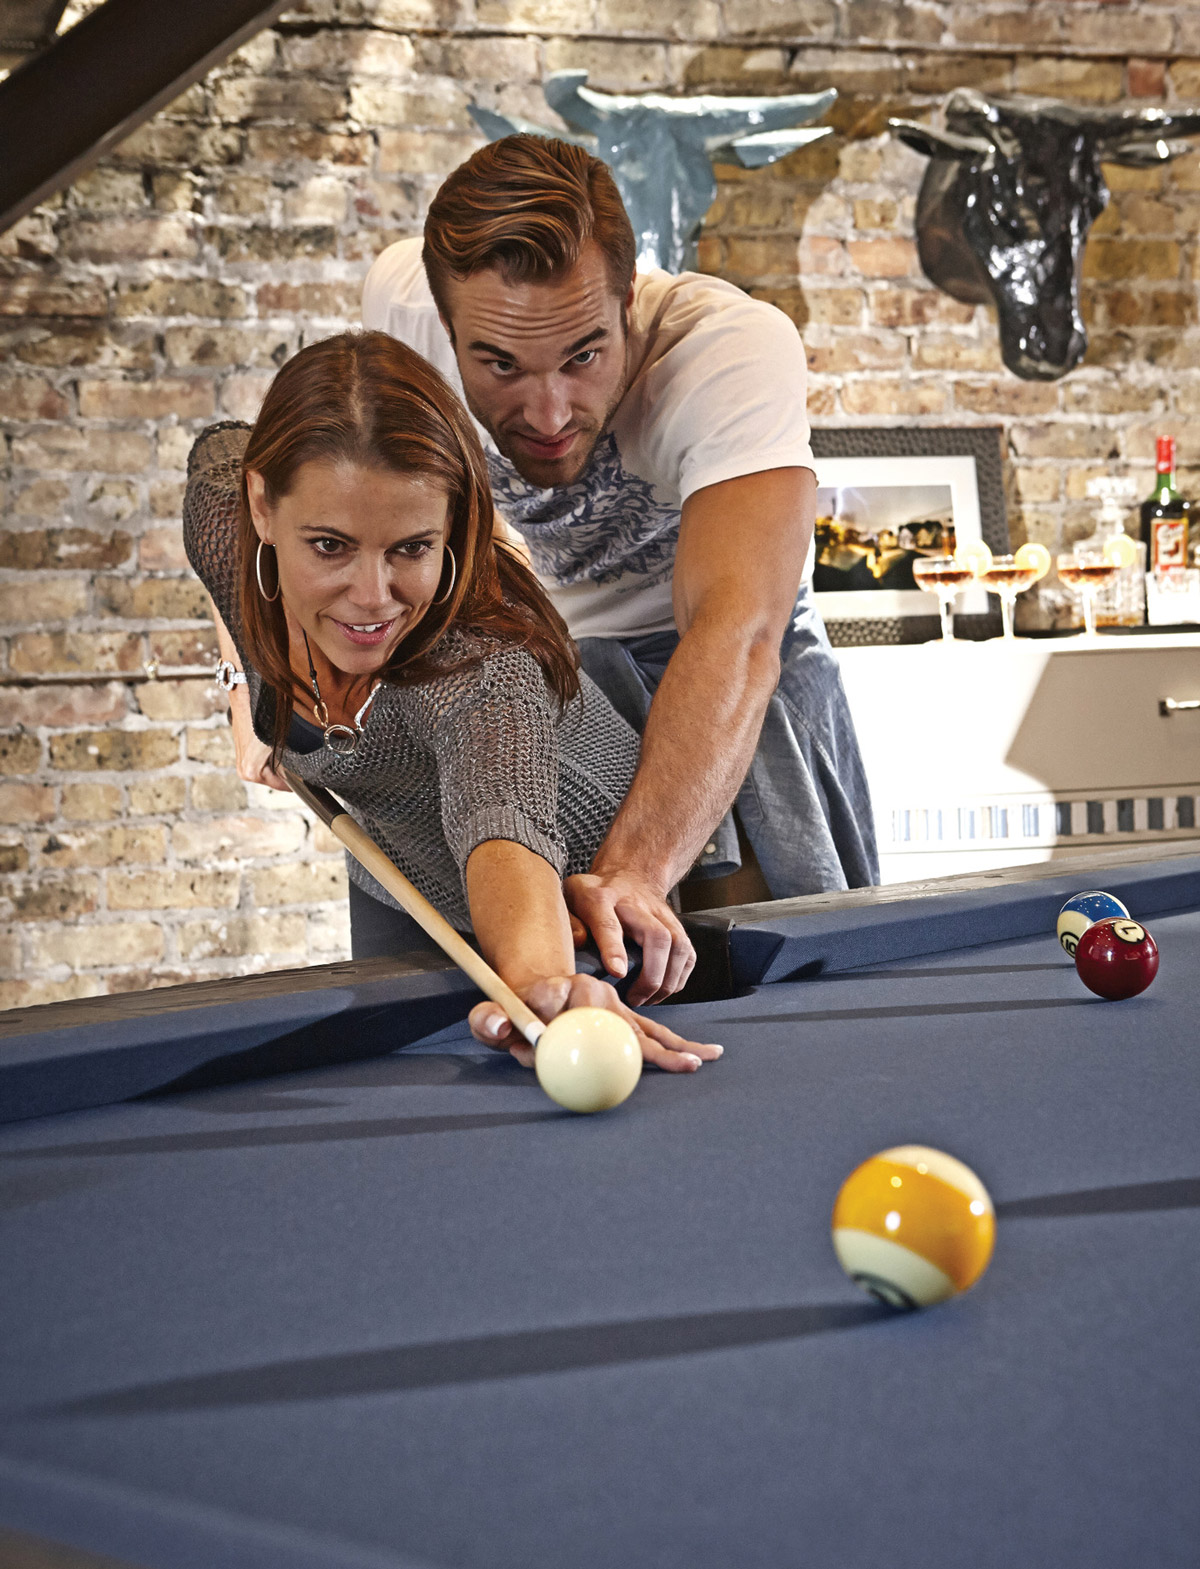 Billiards Plus The Largest Selection Of Pool Tables In Central Ohio - Pool table movers columbus ohio